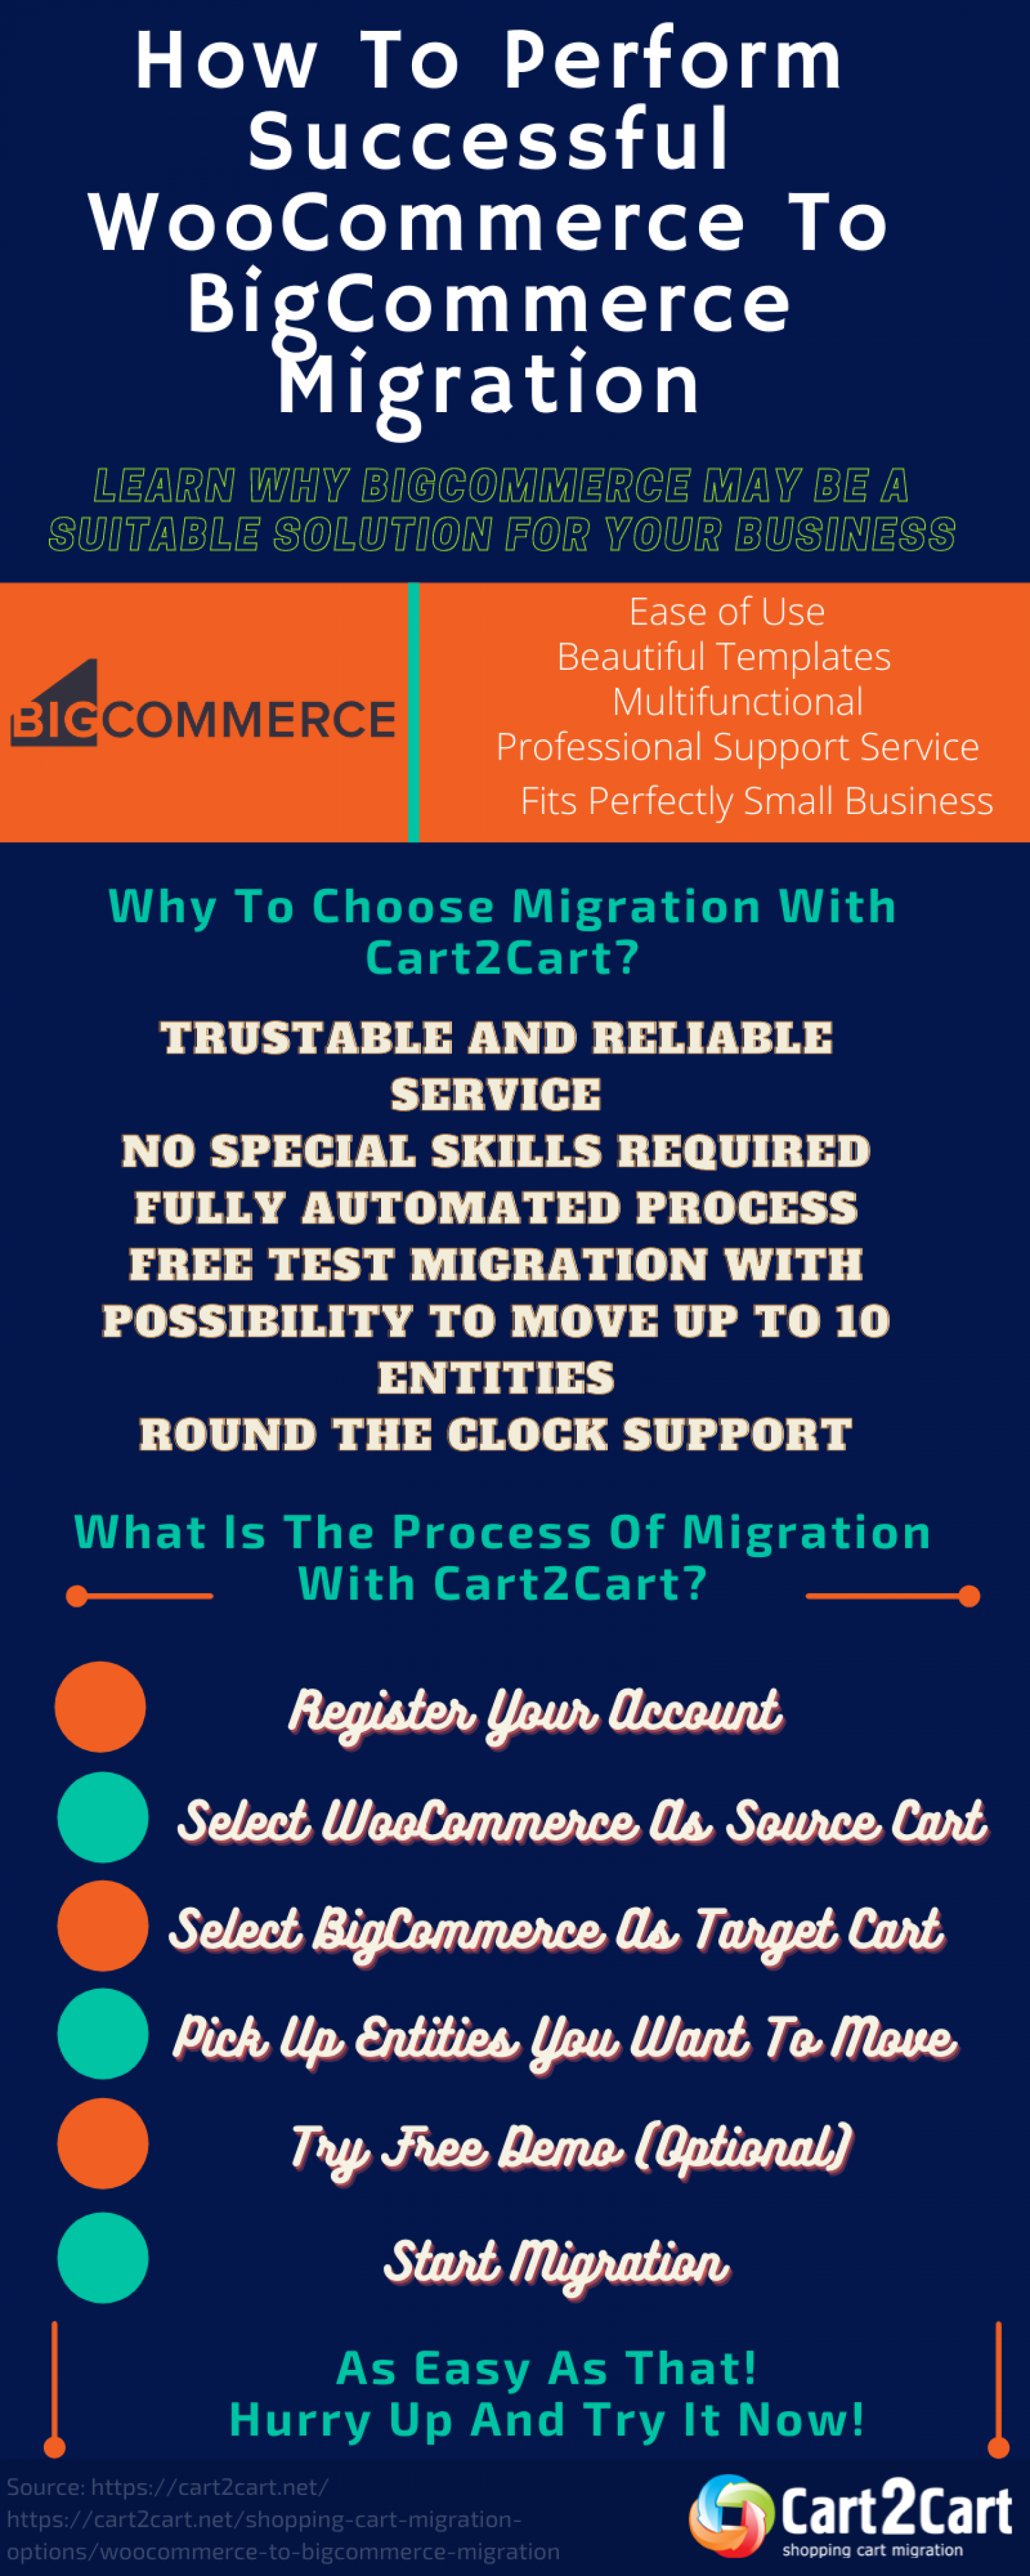 How To Perform Successful WooCommerce To BigCommerce Migration Infographic